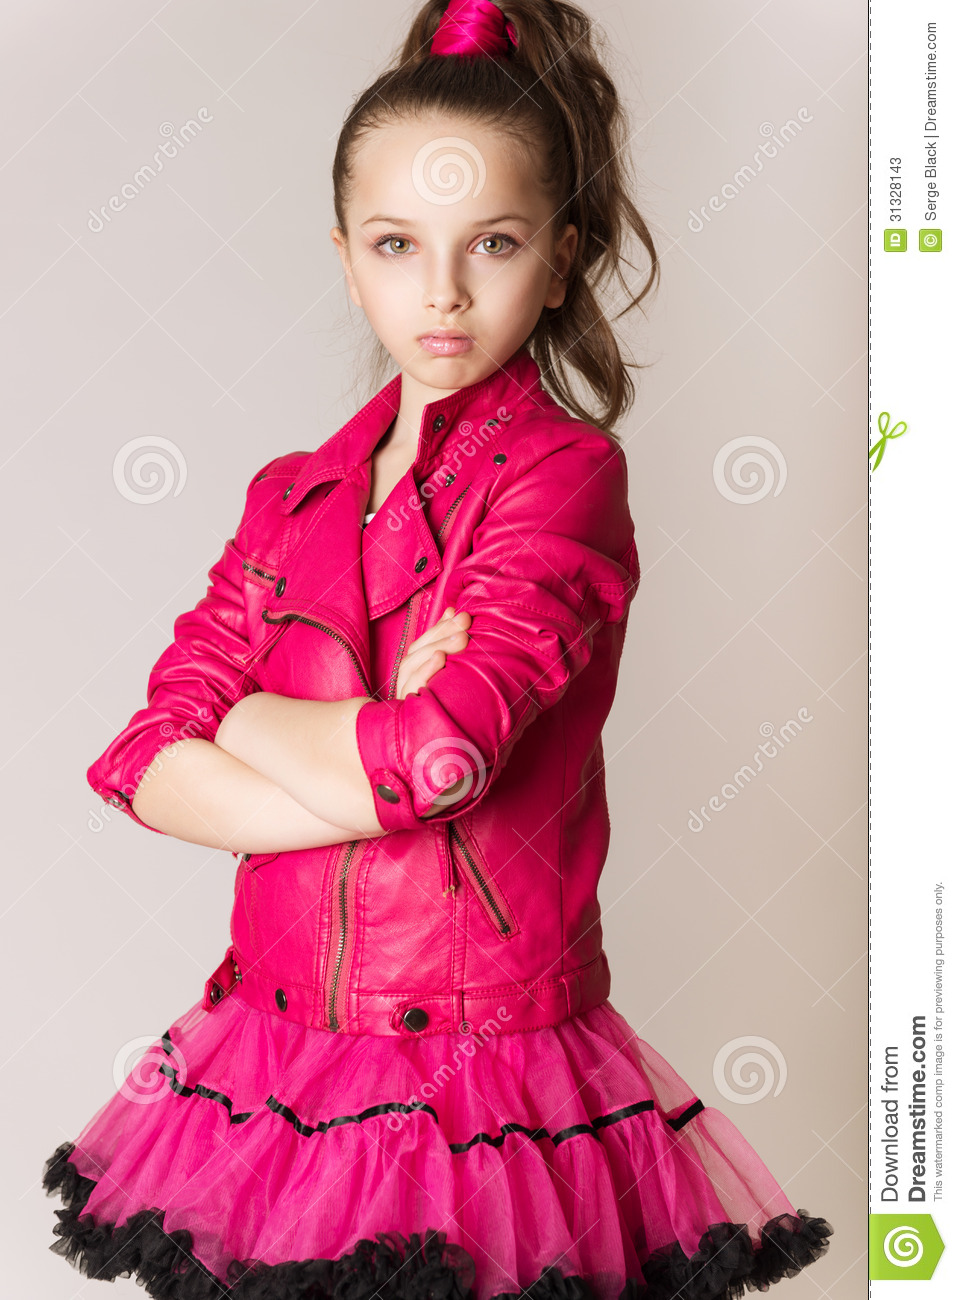 Little Girls Nails And Girls On Pinterest: Fashion Little Girl In Glam Rock Style Stock Image